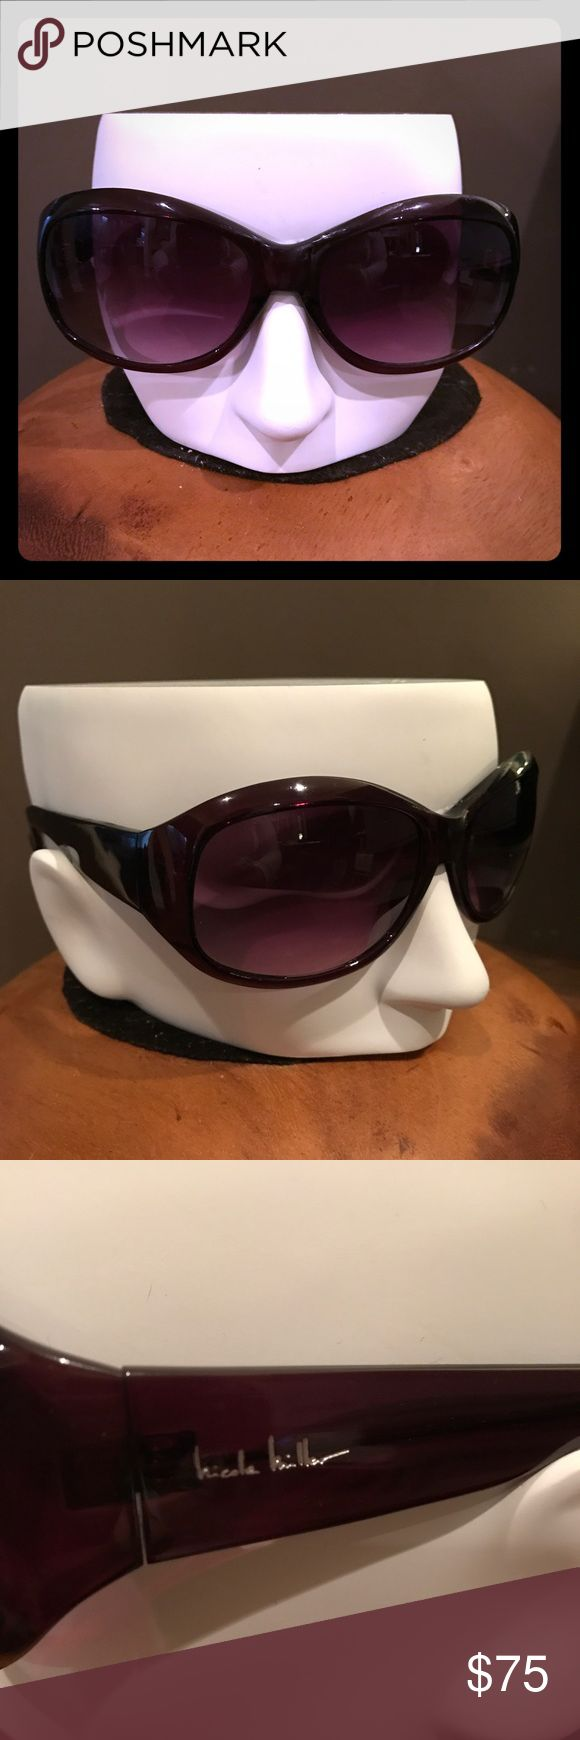 NWOT Nicole Miller Jackie O sunglasses Brand-new, never worn sunglasses from Nicole Miller. Jackie O style oversized brown gradient lenses. Dark brown frame with wide stems. Perfect condition. 100% authentic. Purchased directly from optical distributor. Will ship with soft cloth pouch. Nicole Miller Accessories Sunglasses